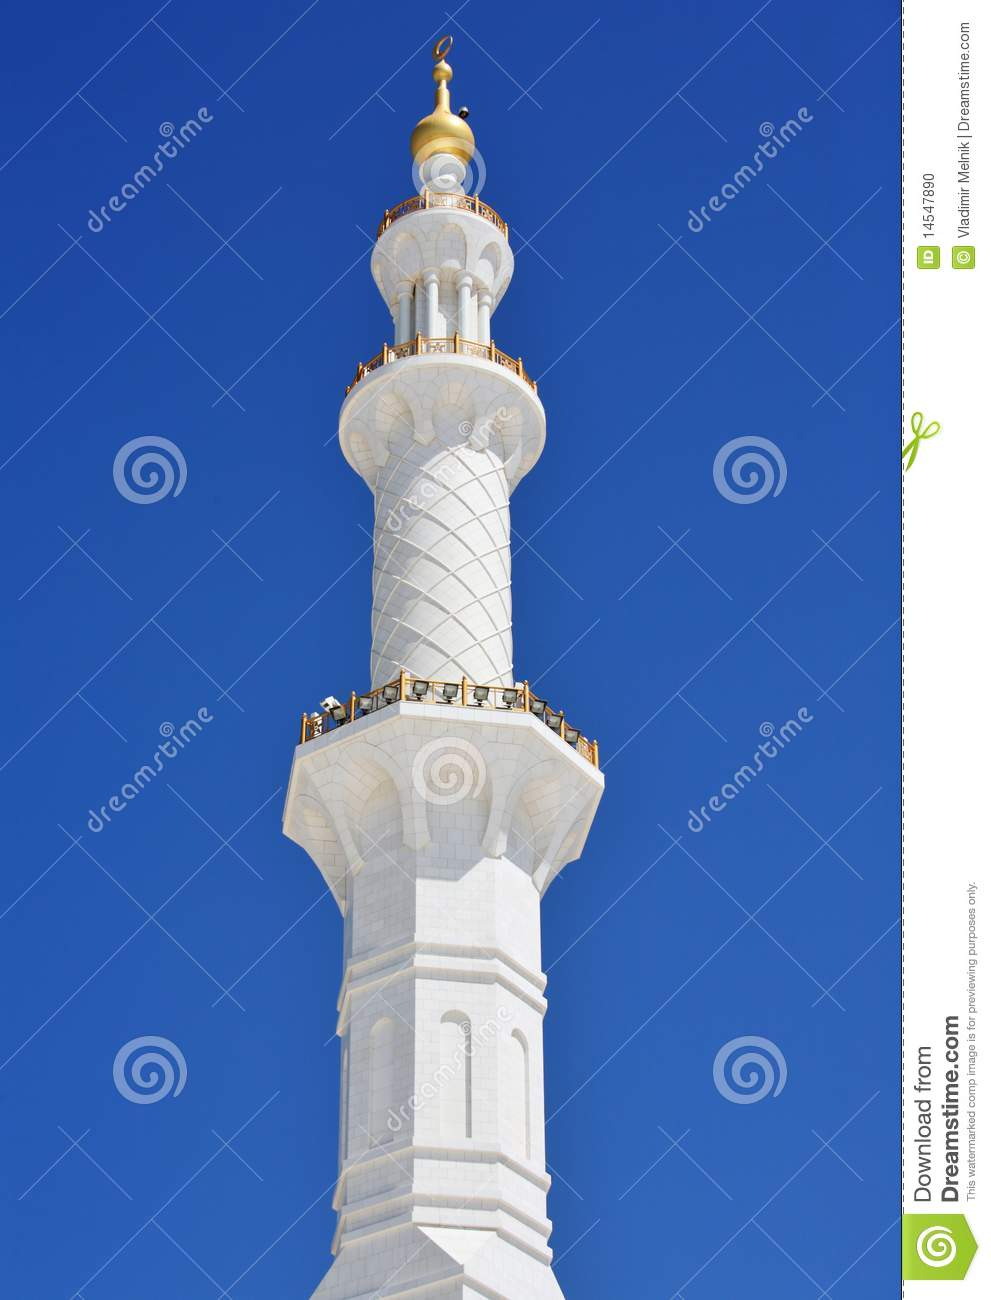 Minaret Of Sheikh Zayed Mosque In Abu Dhabi Stock Photo.